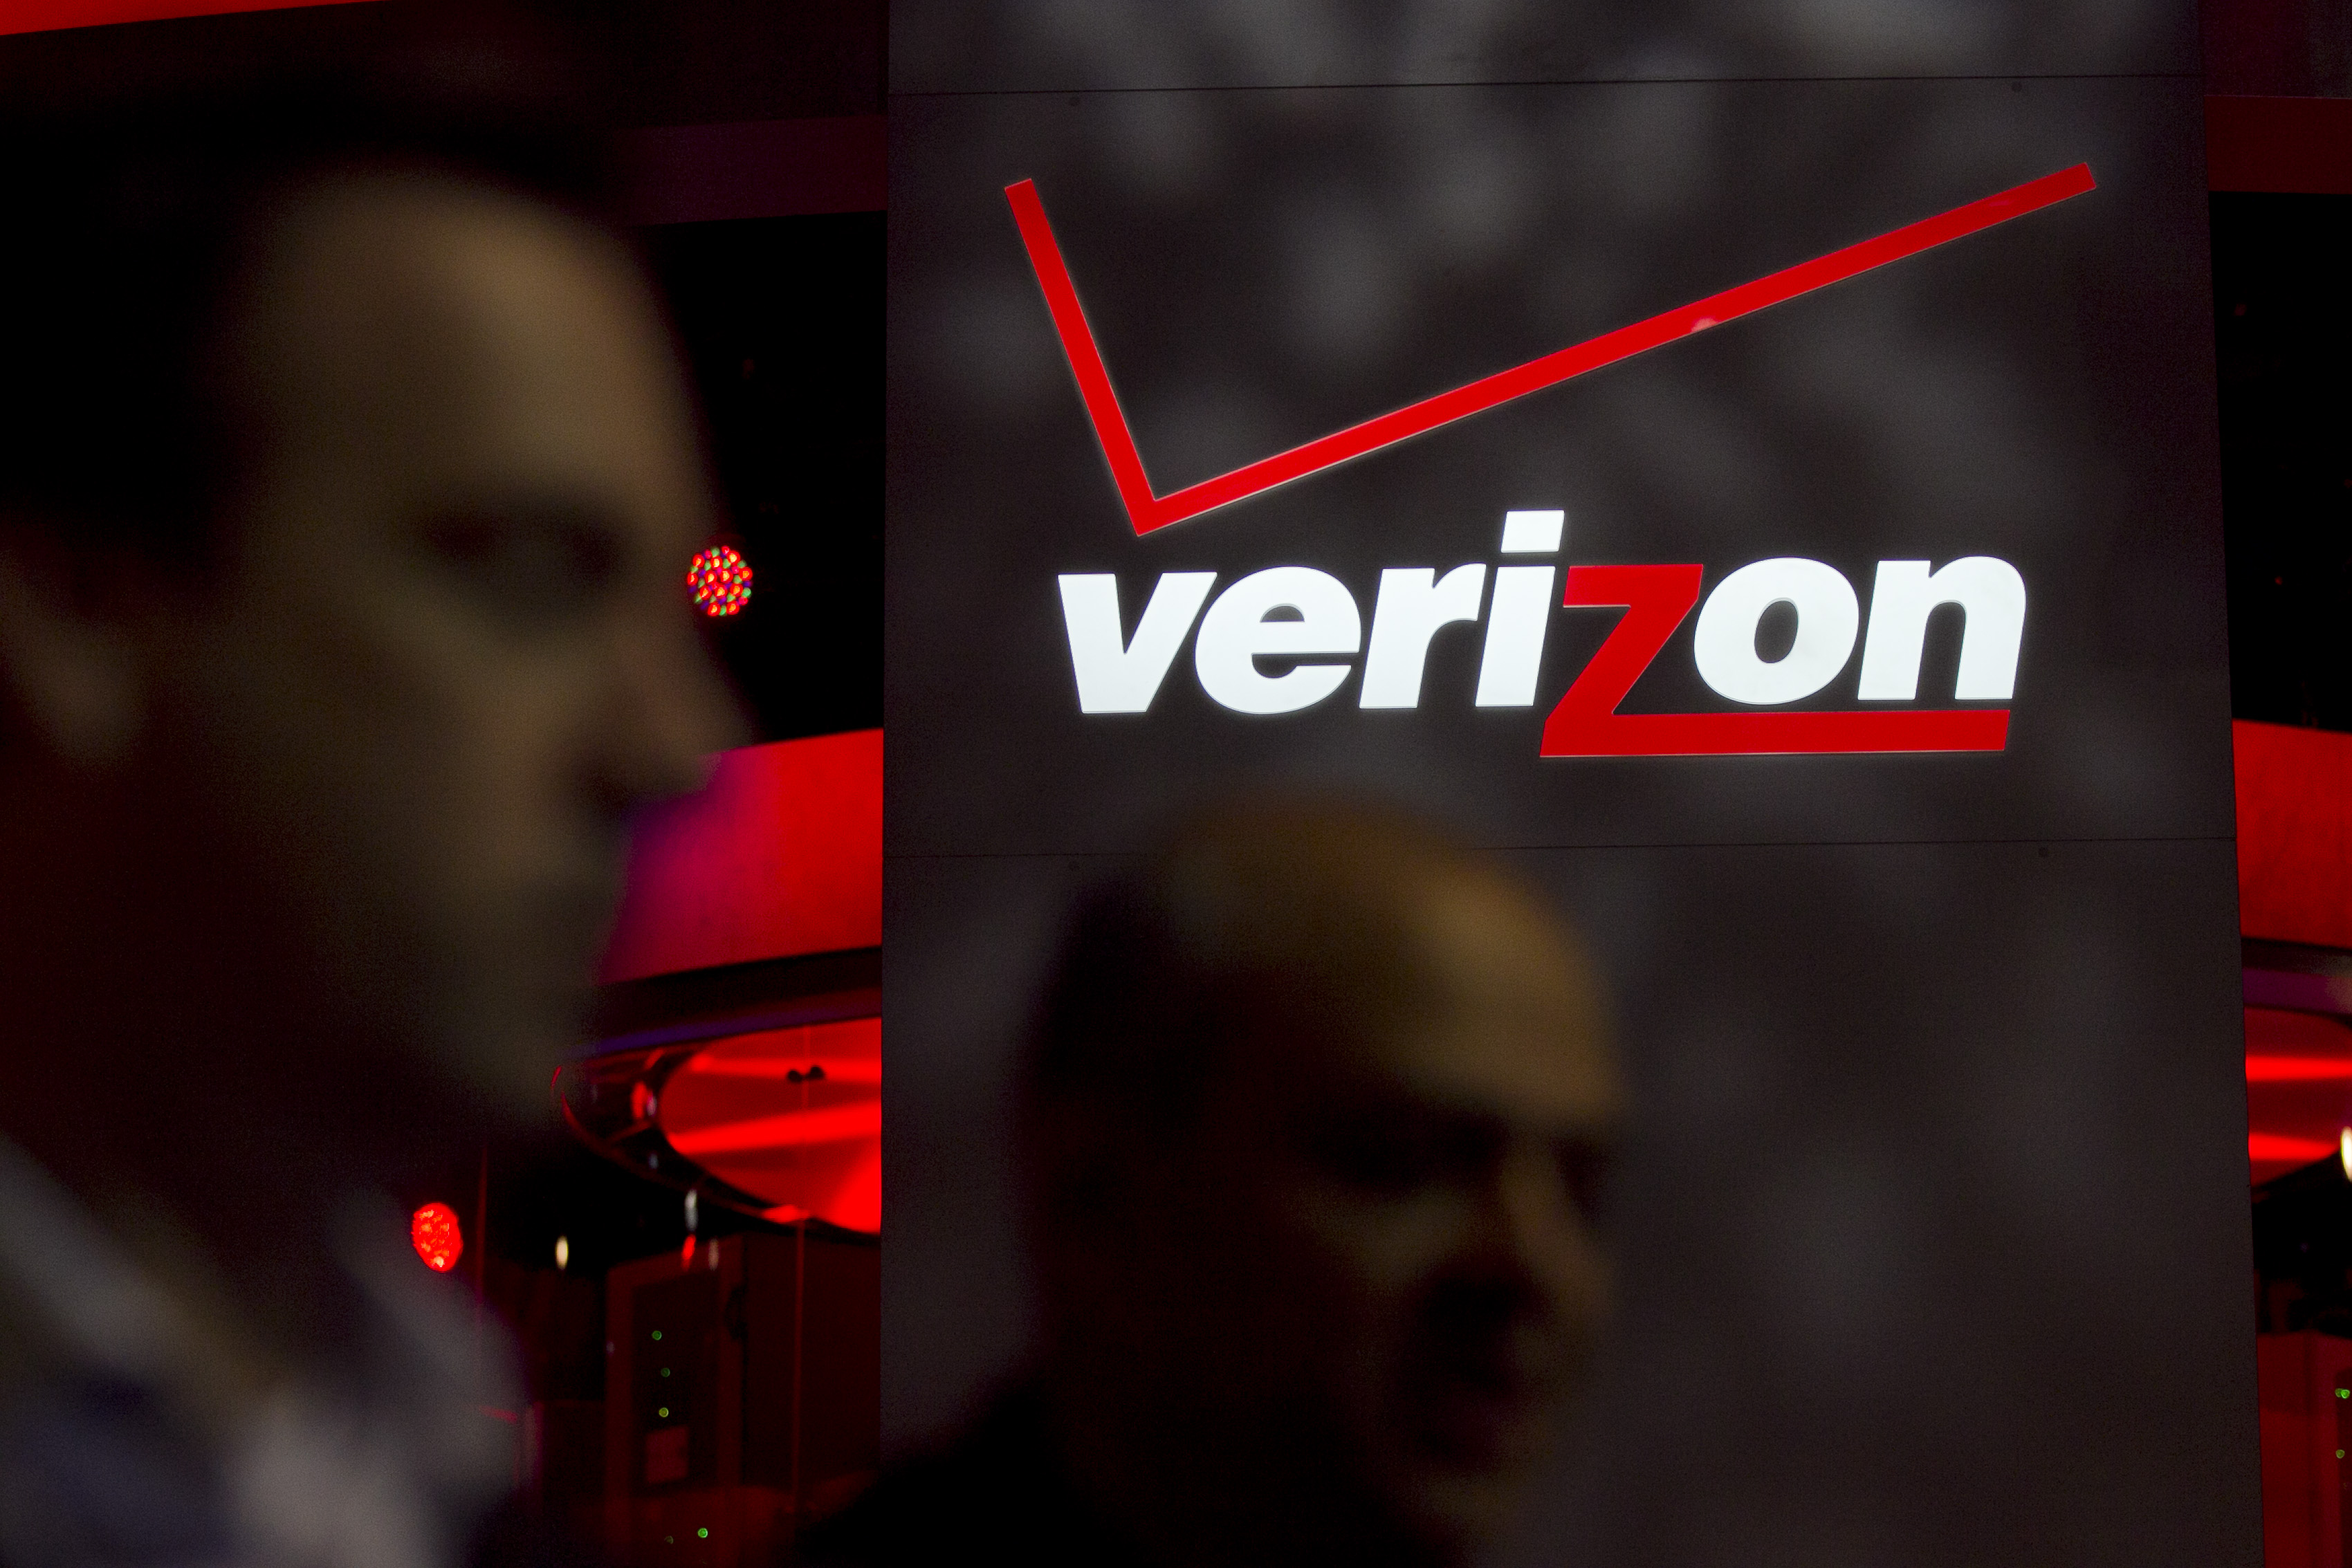 The Verizon Communications Inc. logo is seen at the International Consumer Electronics Show (CES) in Las Vegas, Nevada, U.S., on Thursday, Jan. 12, 2012.